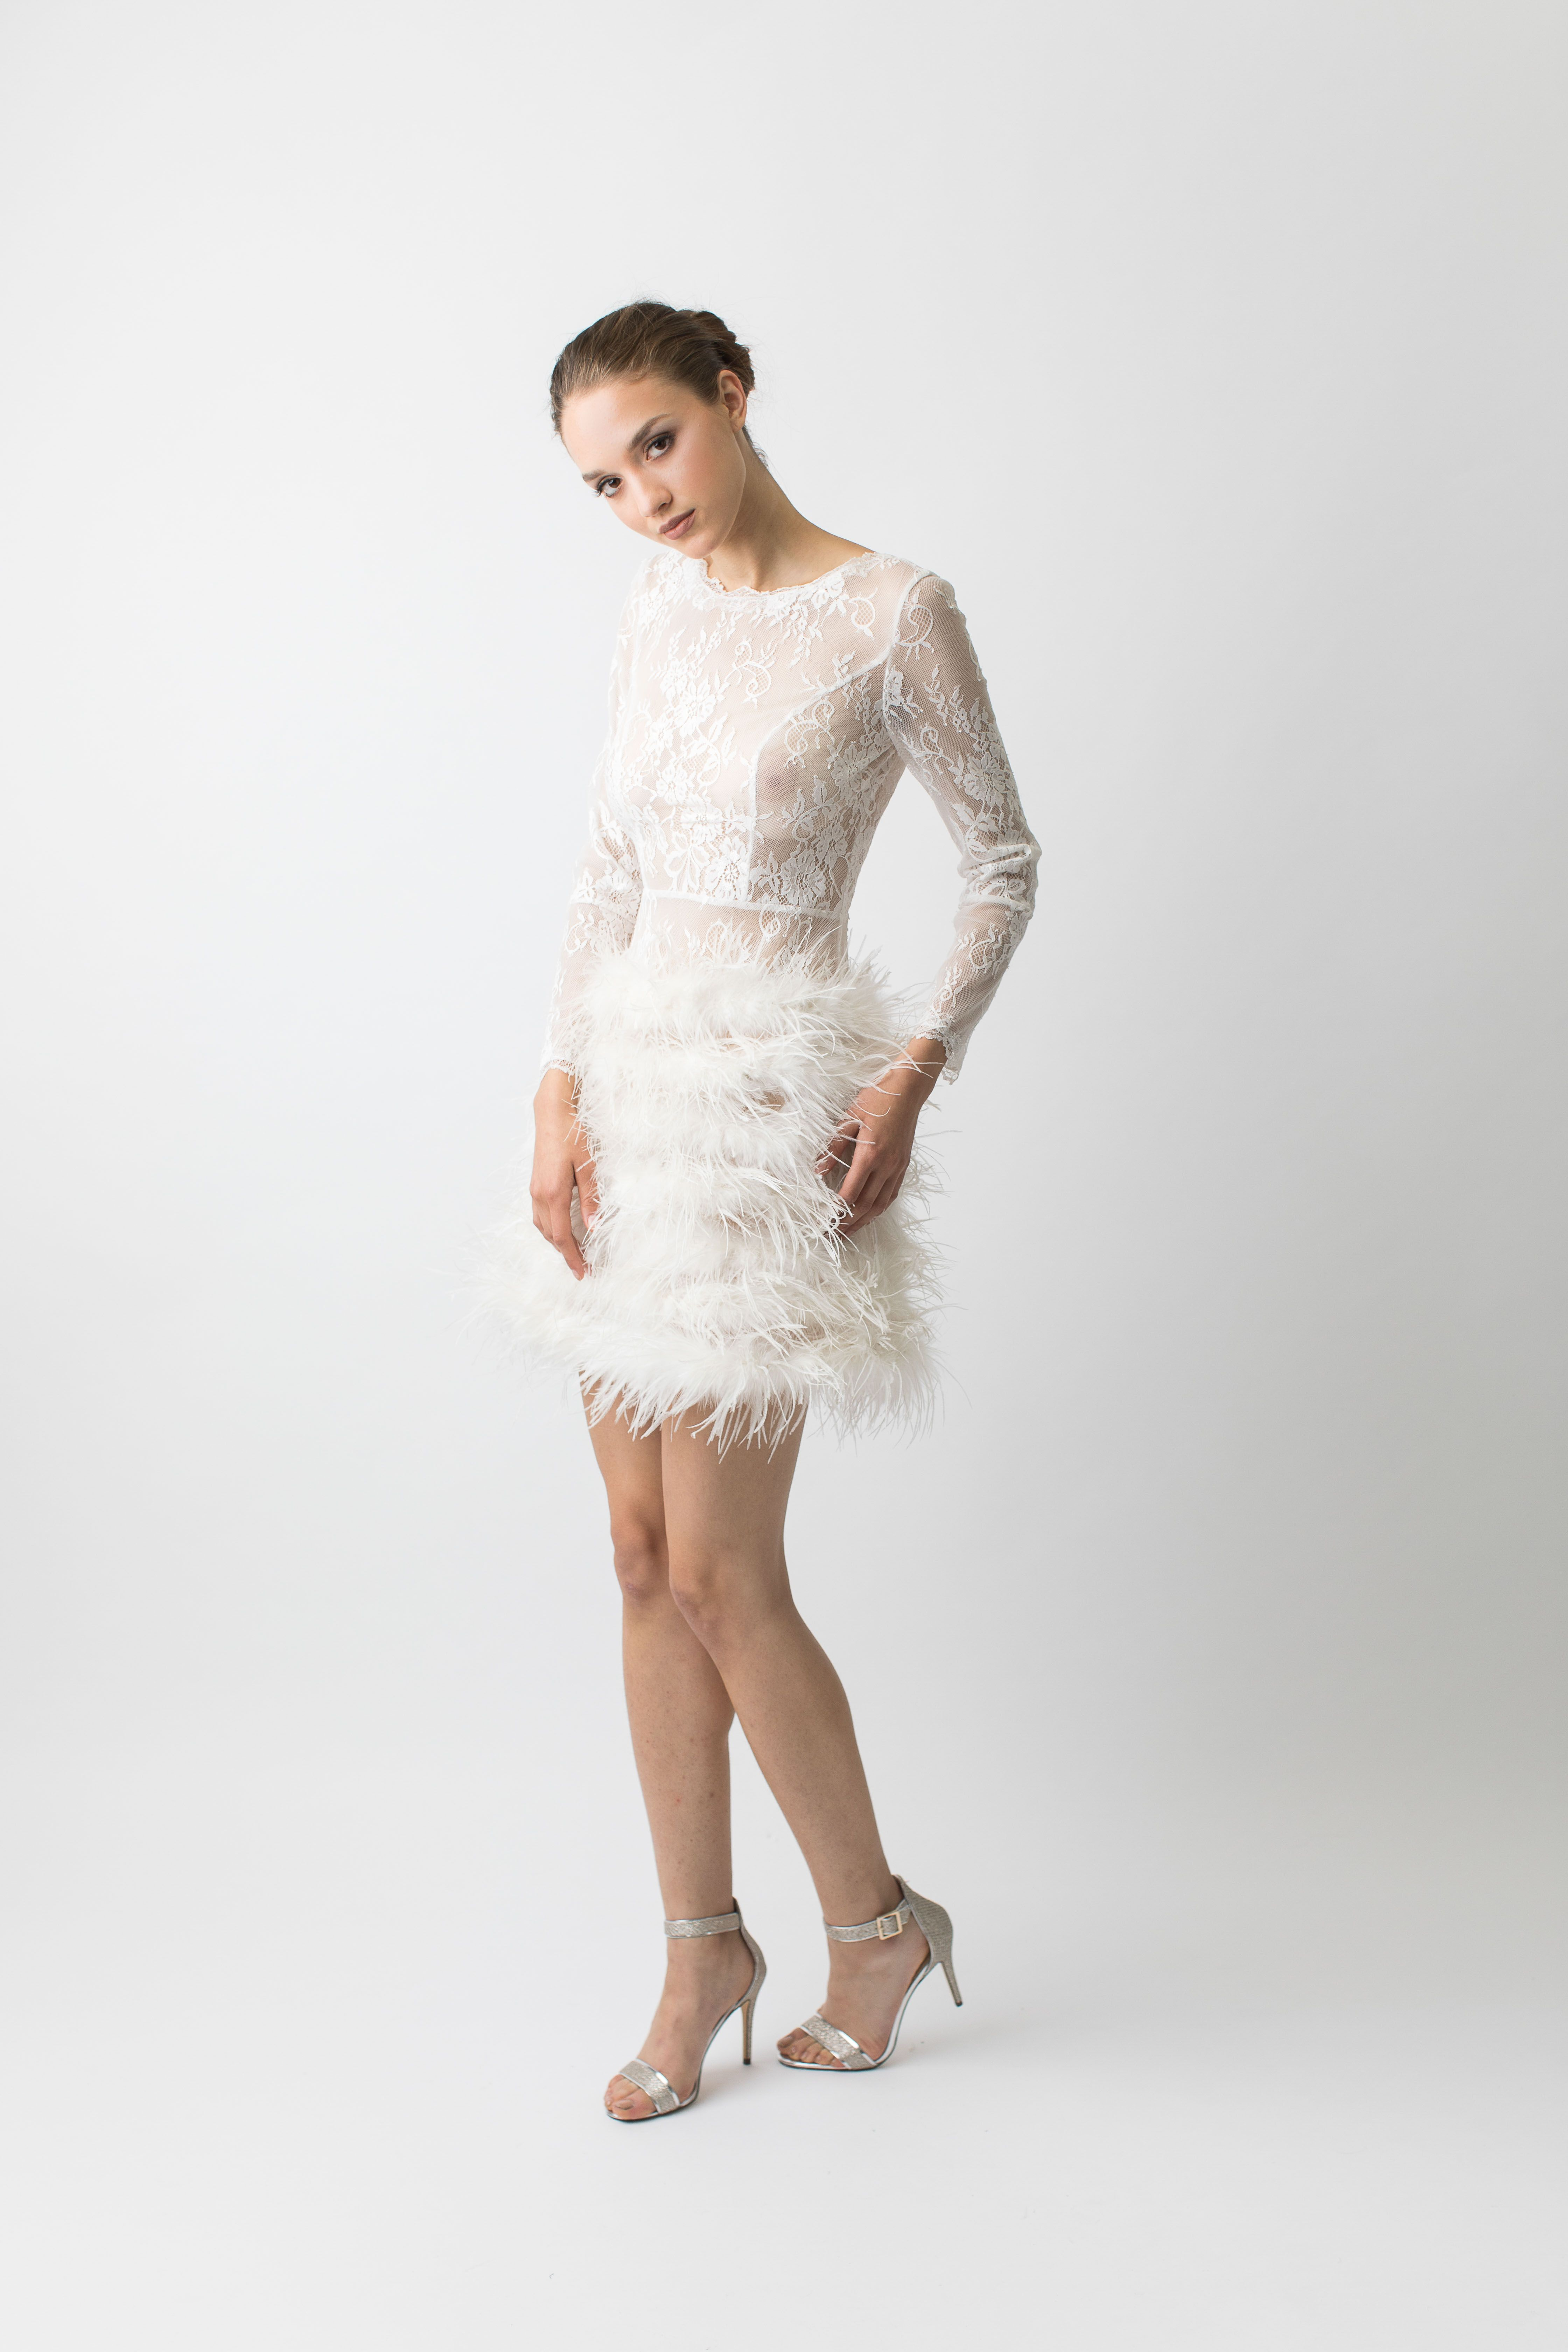 ca8915ef193 White sheer lace long sleeve feathered dress. This mini dress is the epitome  of fun